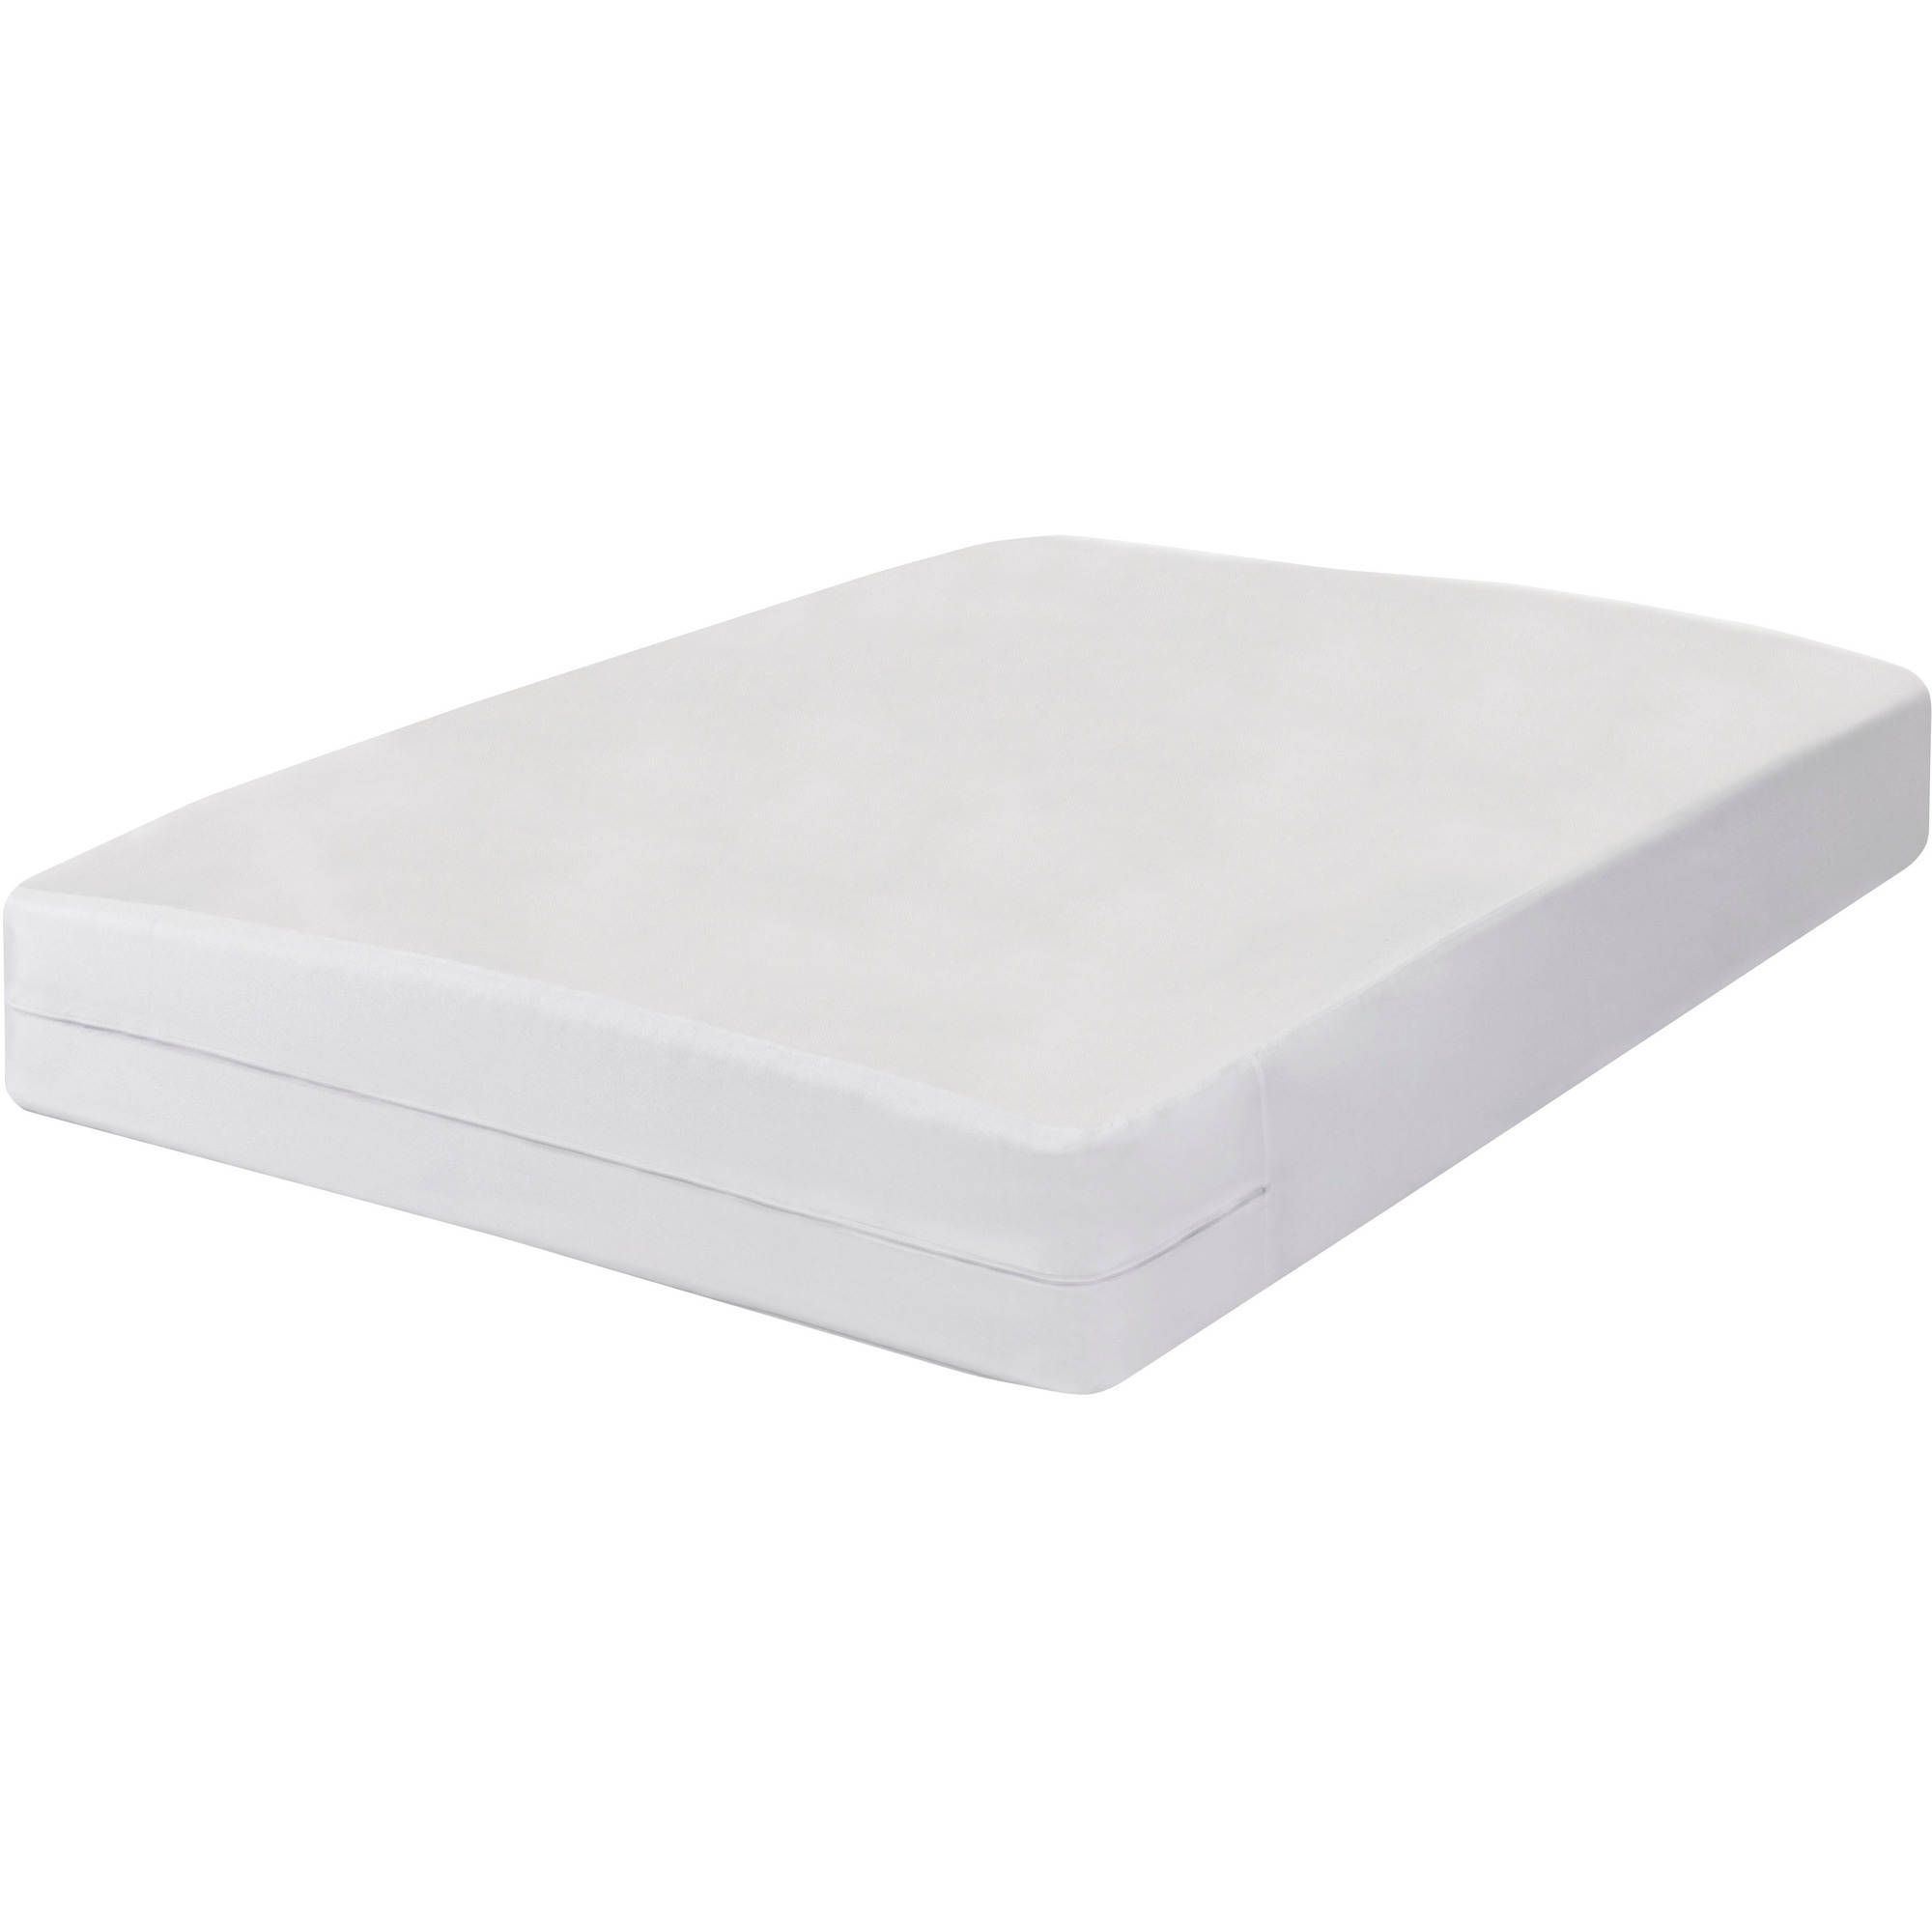 Bed Bug Proof Cover Original Bed Bug Blocker Zippered Mattress Cover Protector